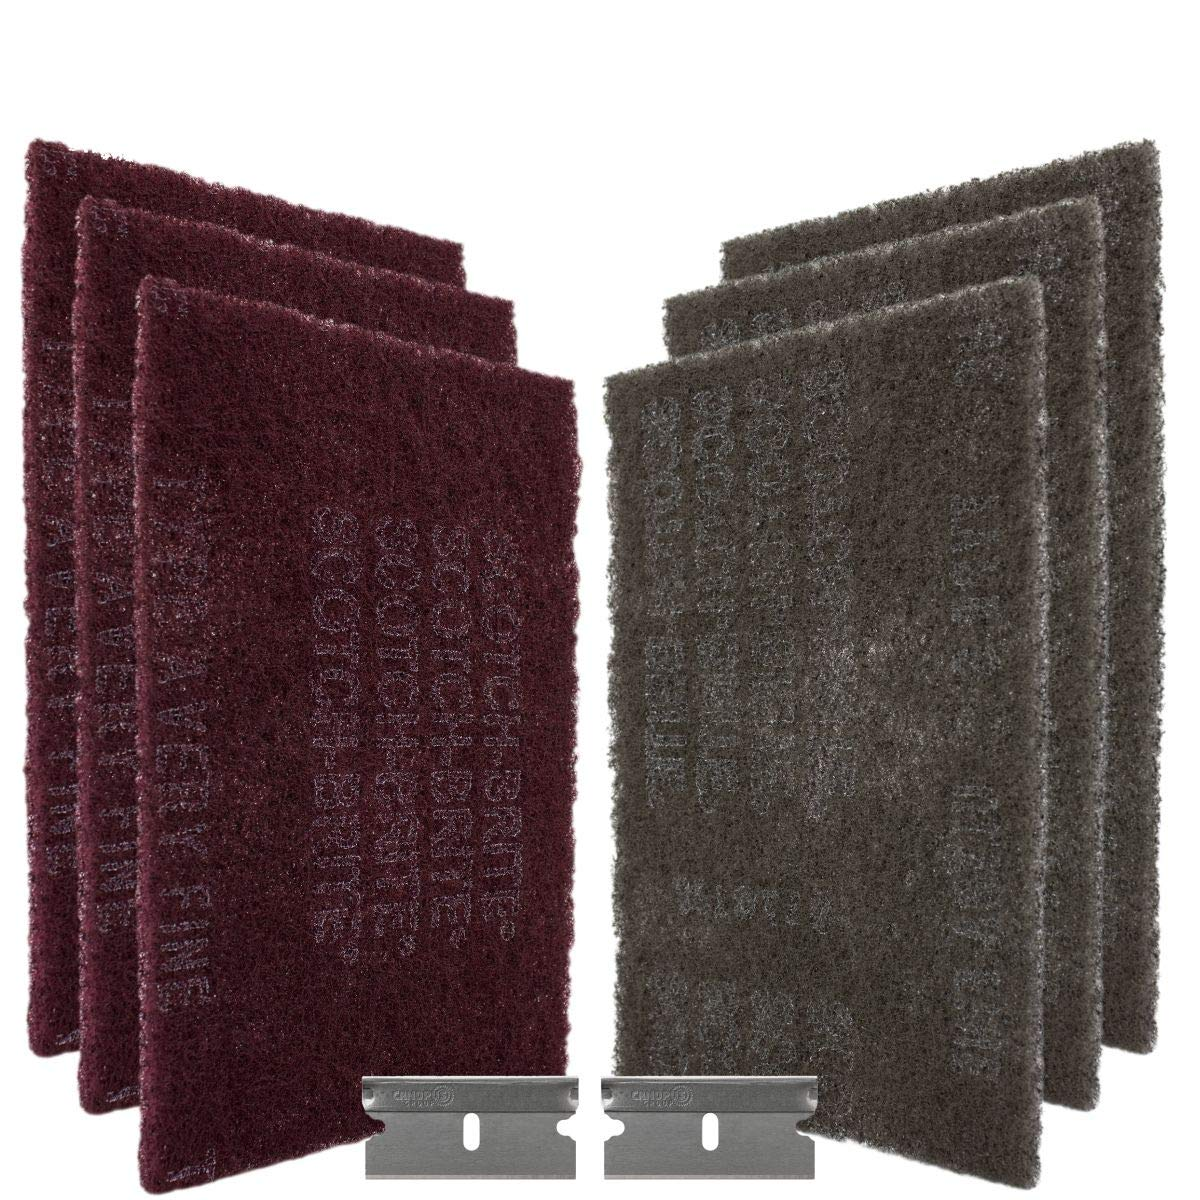 Canopus - 3M Scotch Brite Pads - Scouring Hand Pads to Scuff, Grey and Red (3+3)